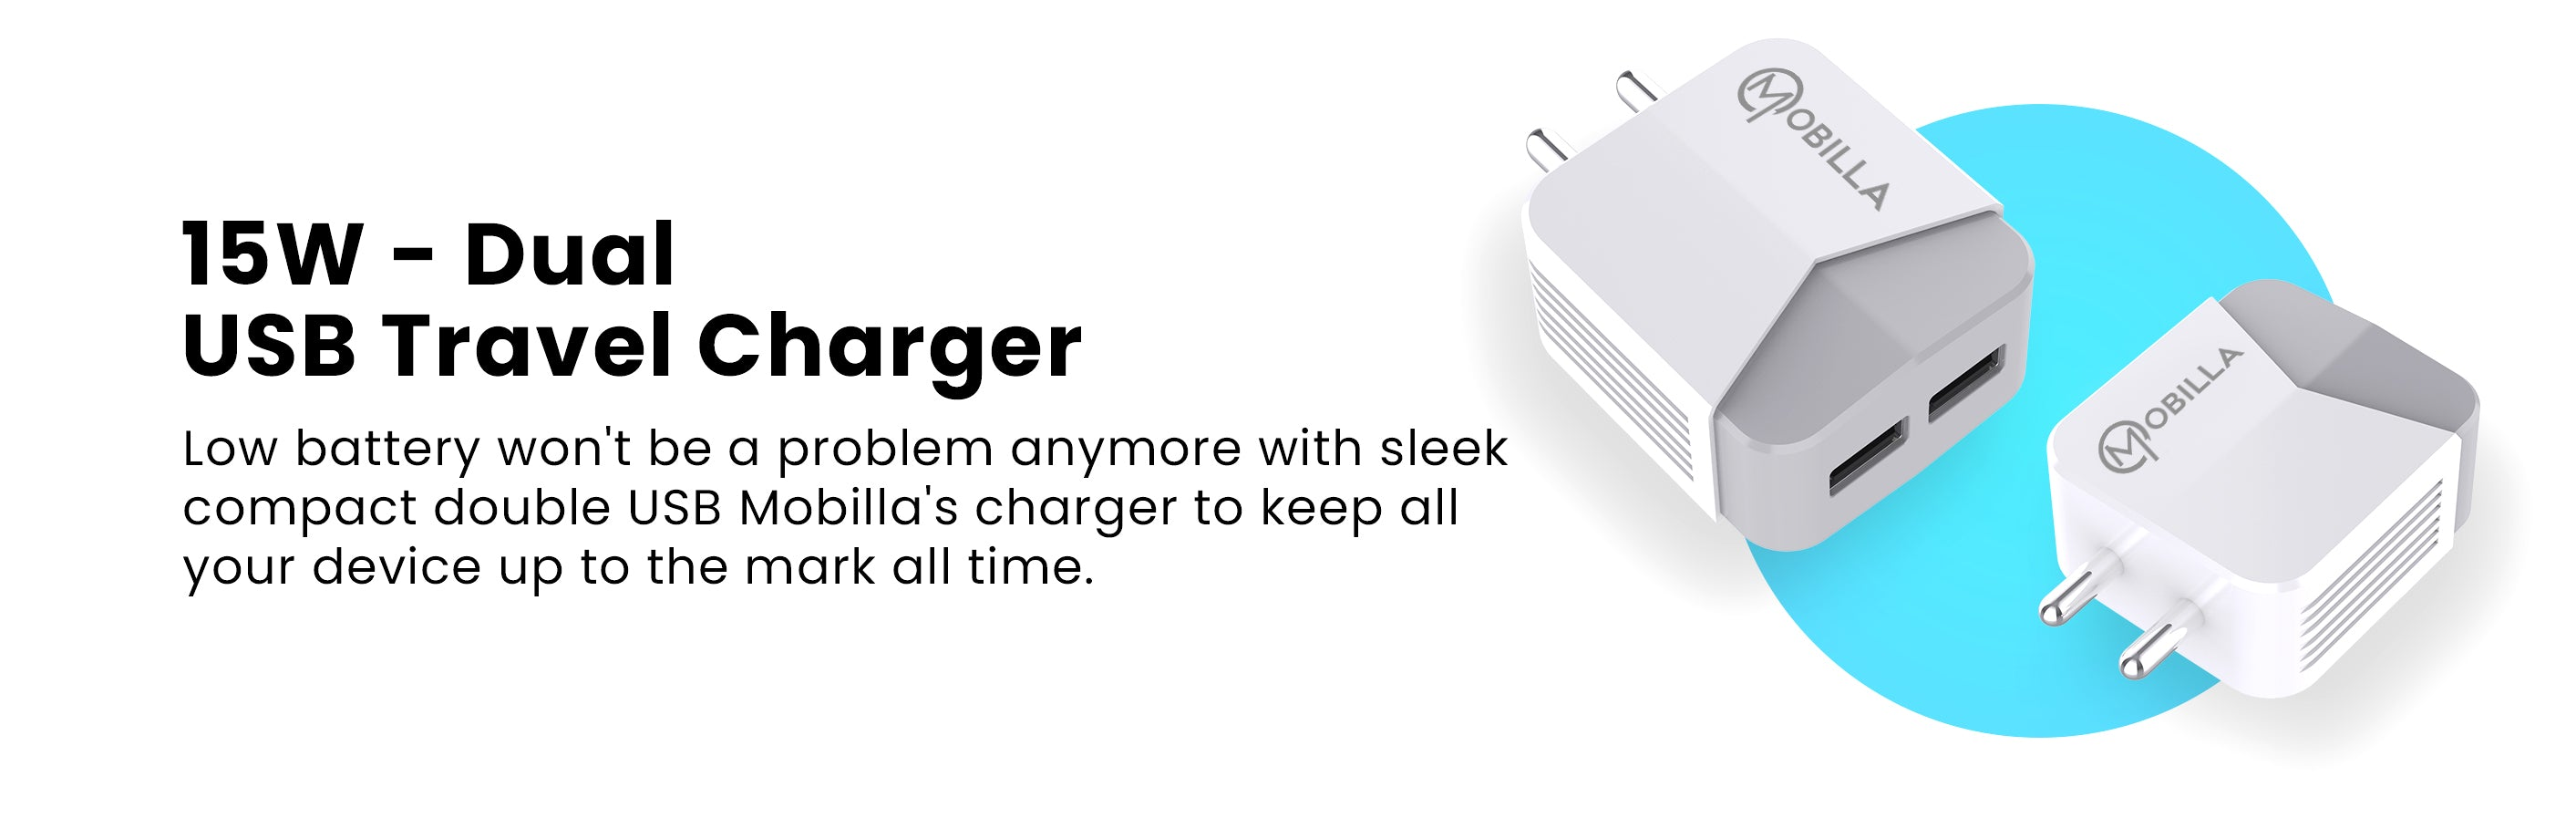 15W Dual USB Charger